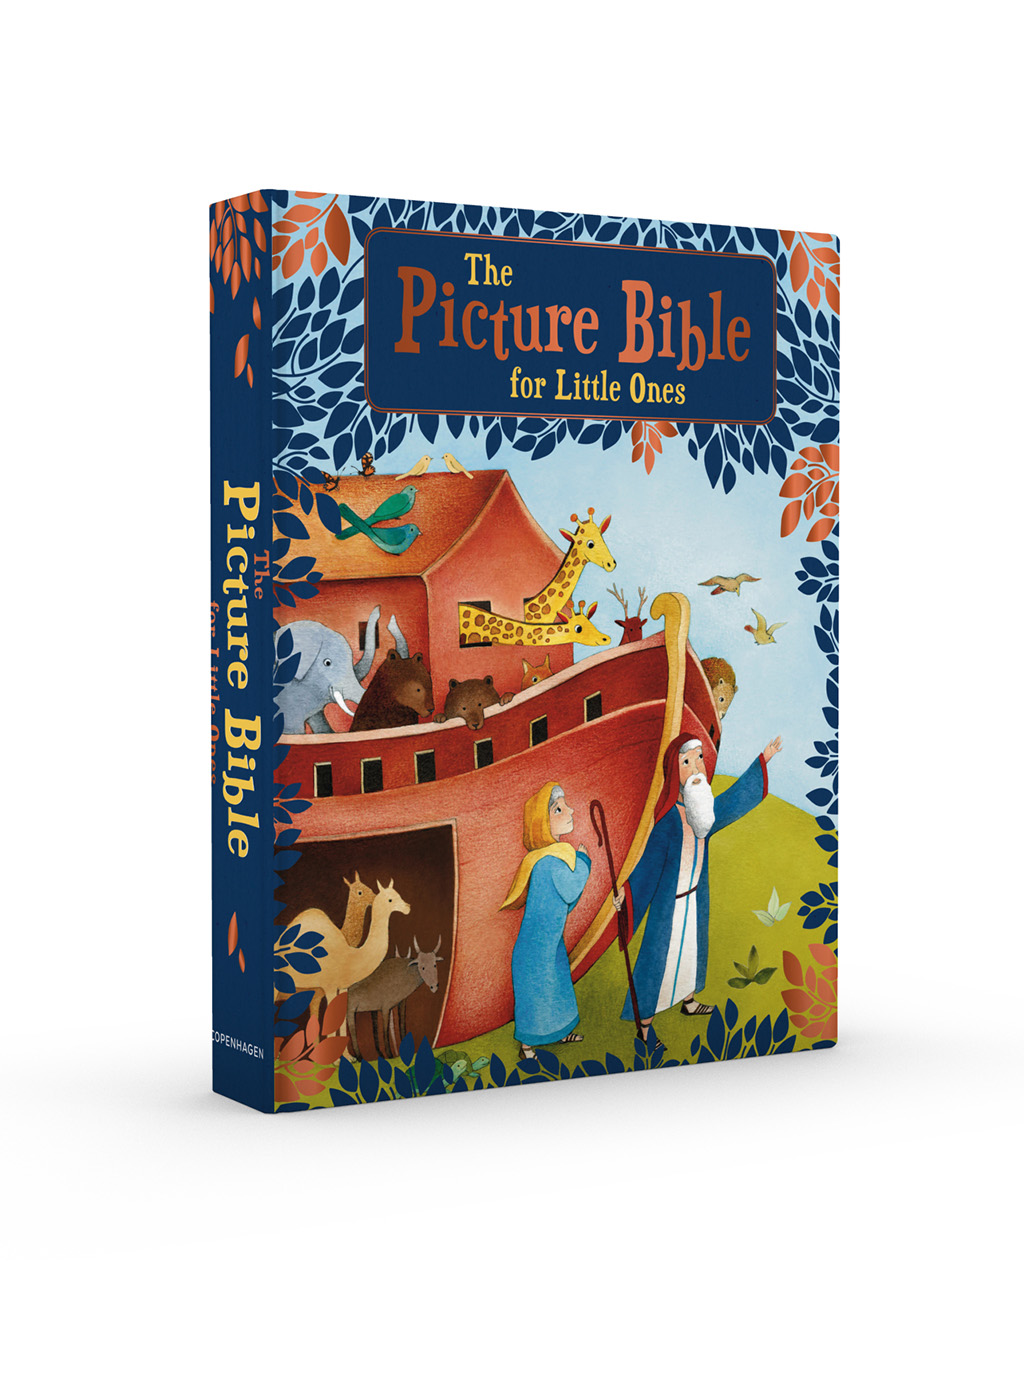 The Picture Bible for Little Ones